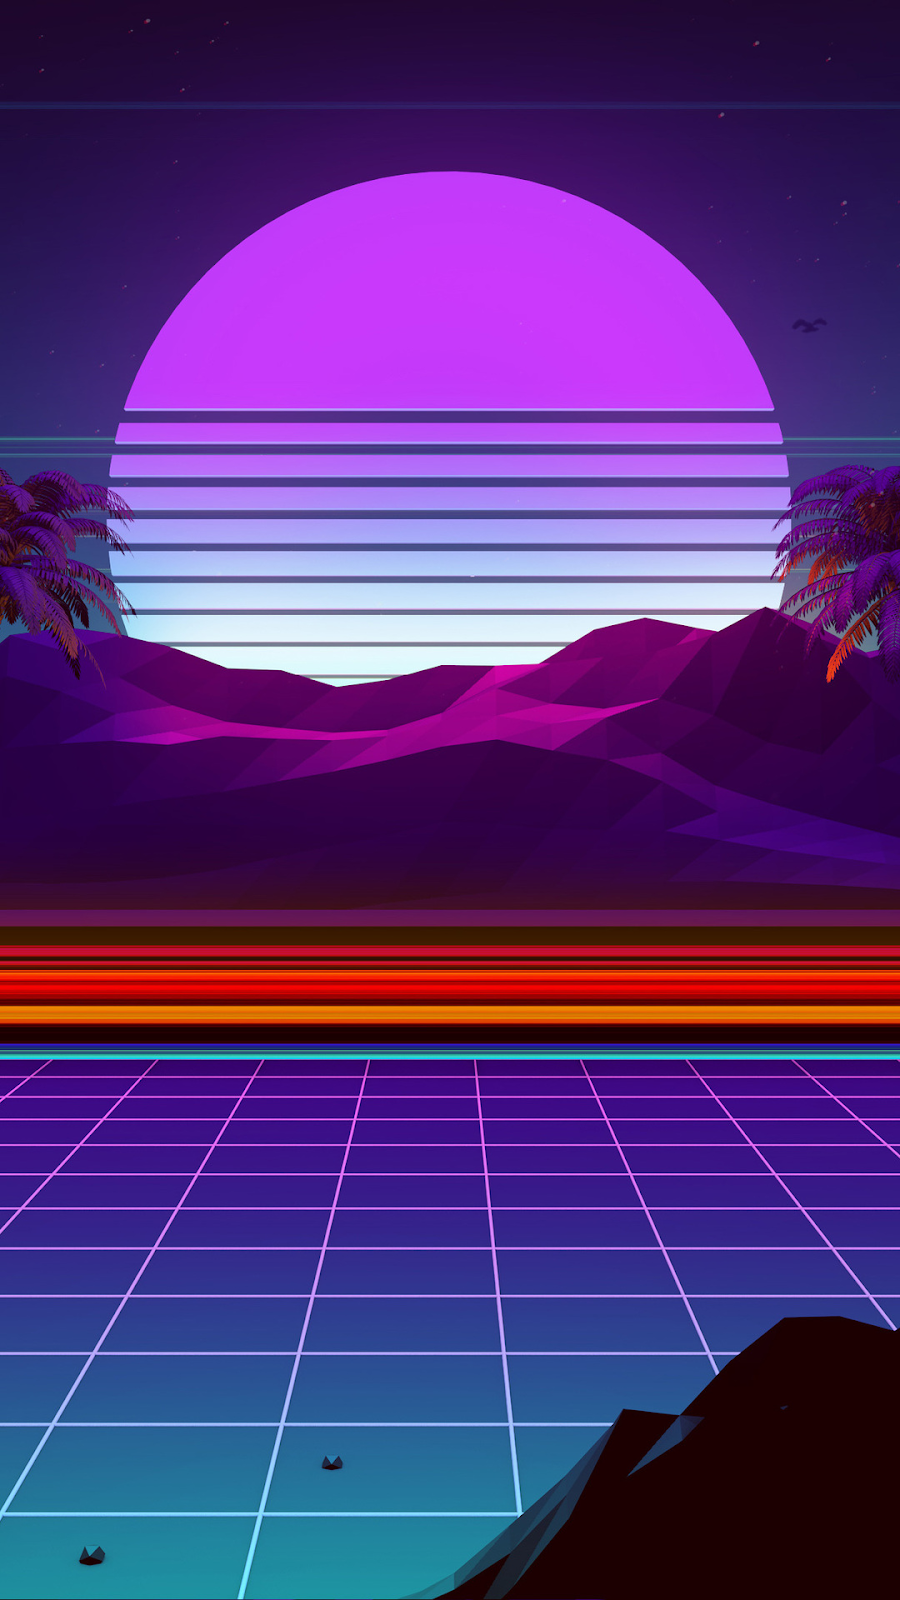 aesthesic vaporwave wallpaper for iphone or android mobile device